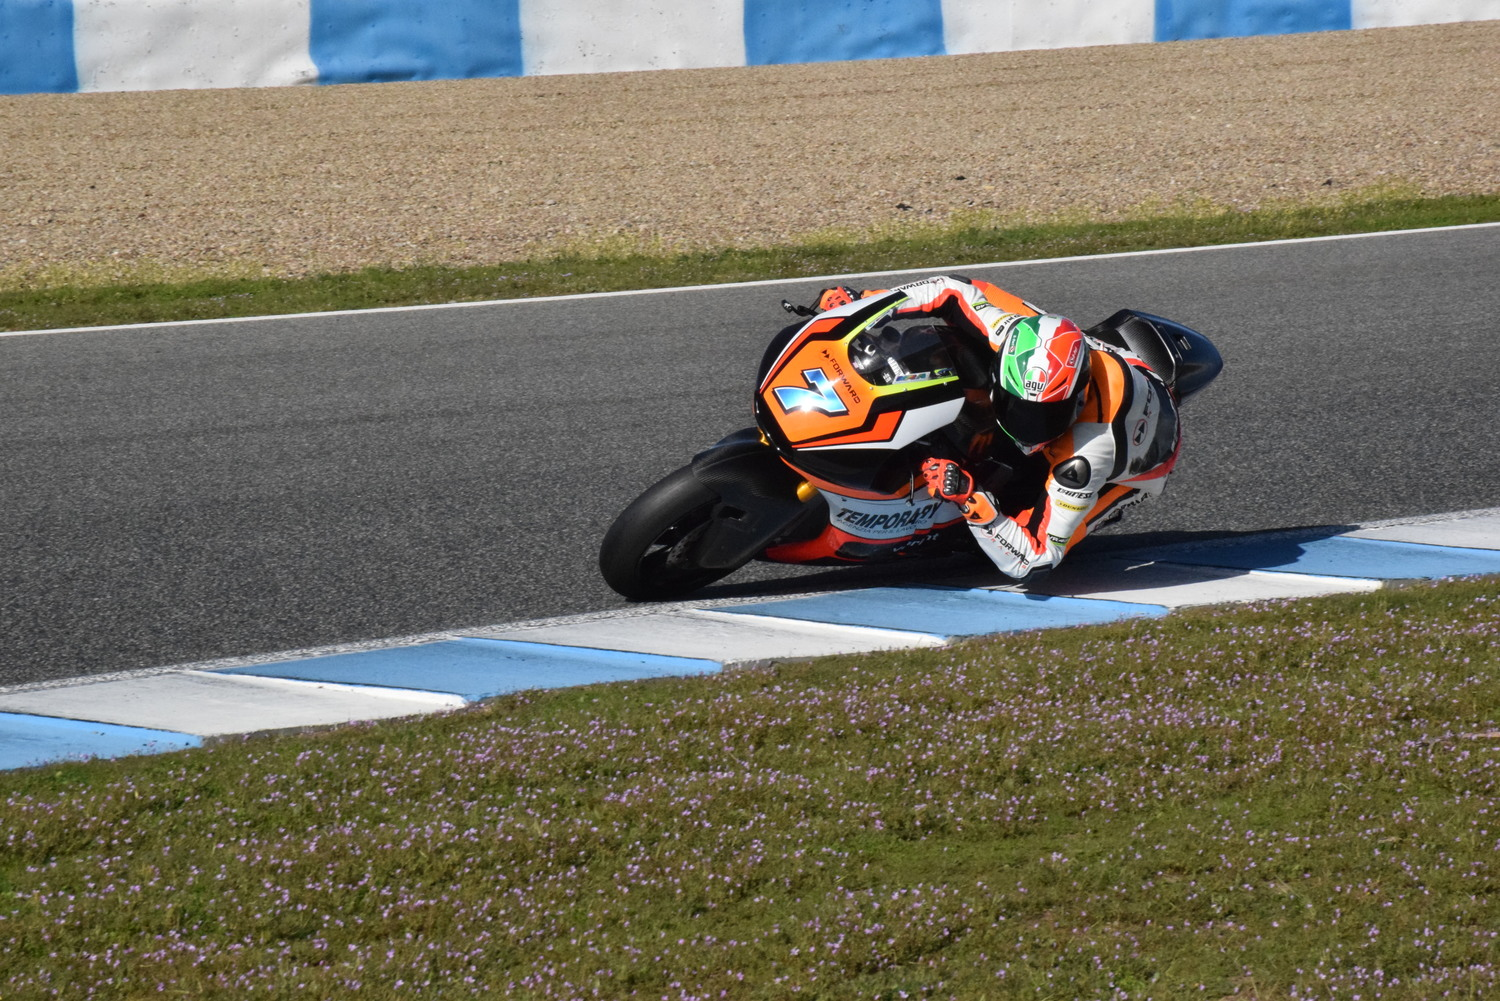 TESTING CONTINUES AT JEREZ FOR FORWARD RACING